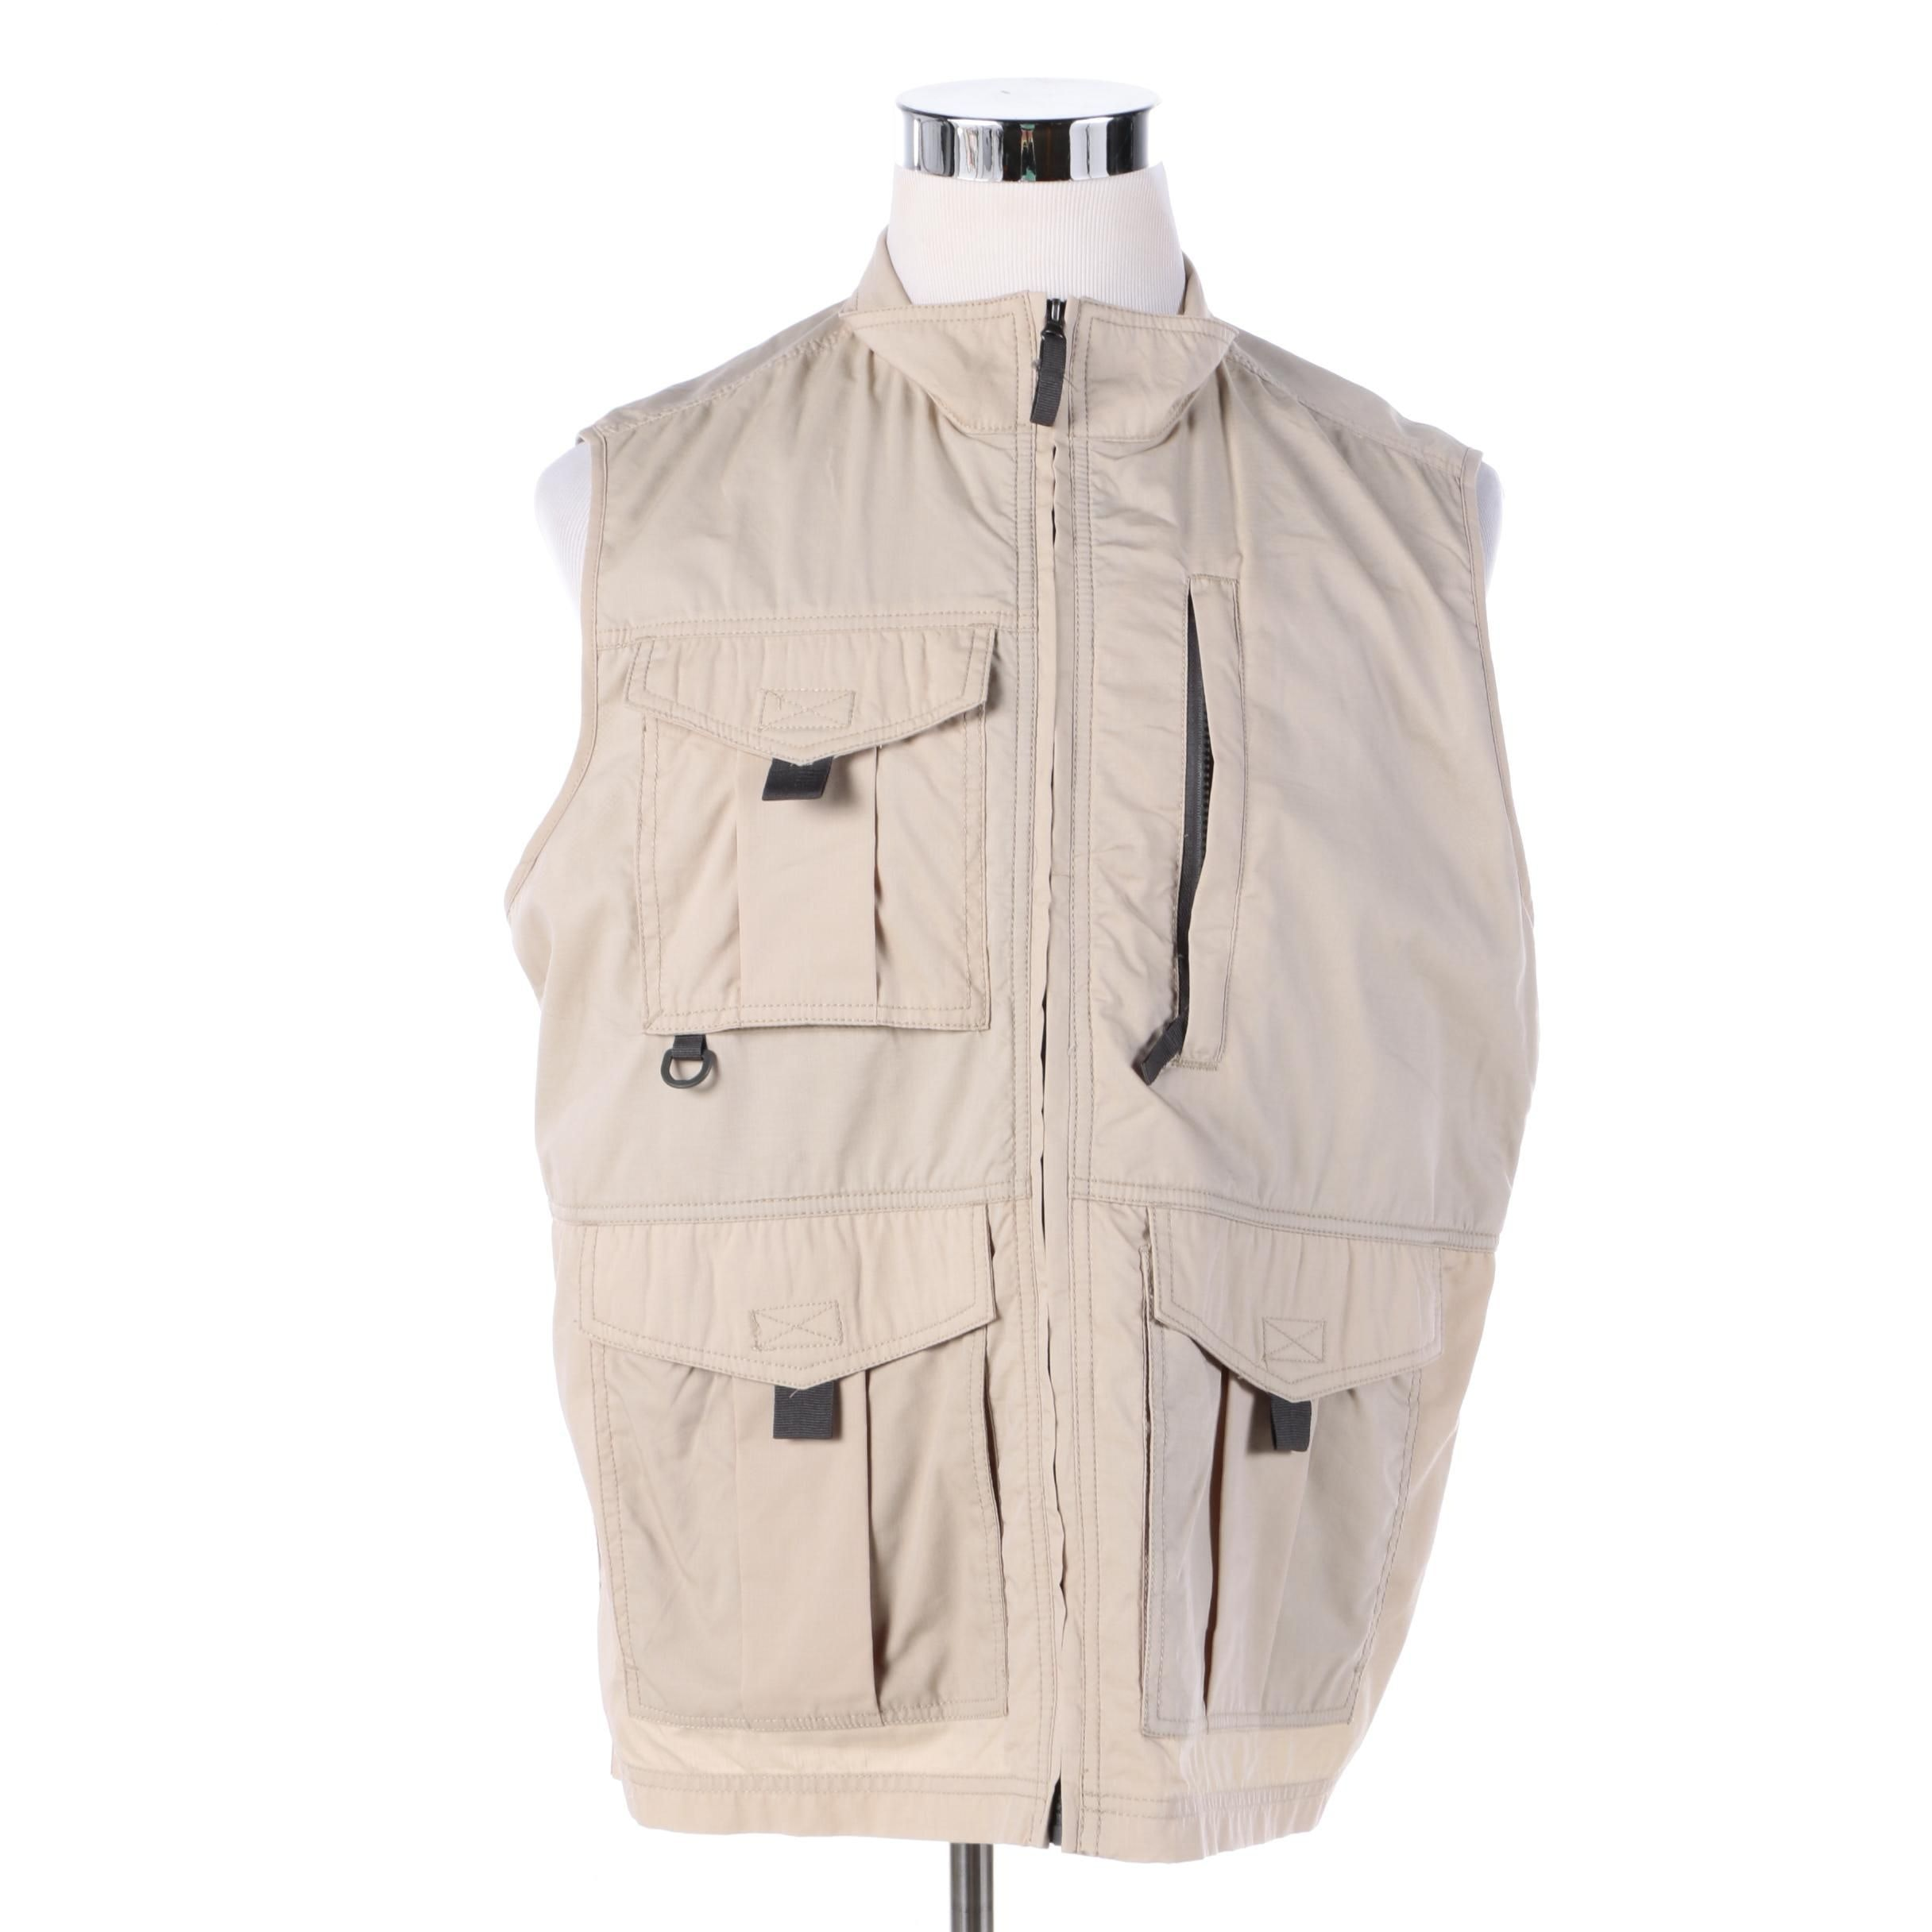 Men's Clearwater Outfitters Angler Vest